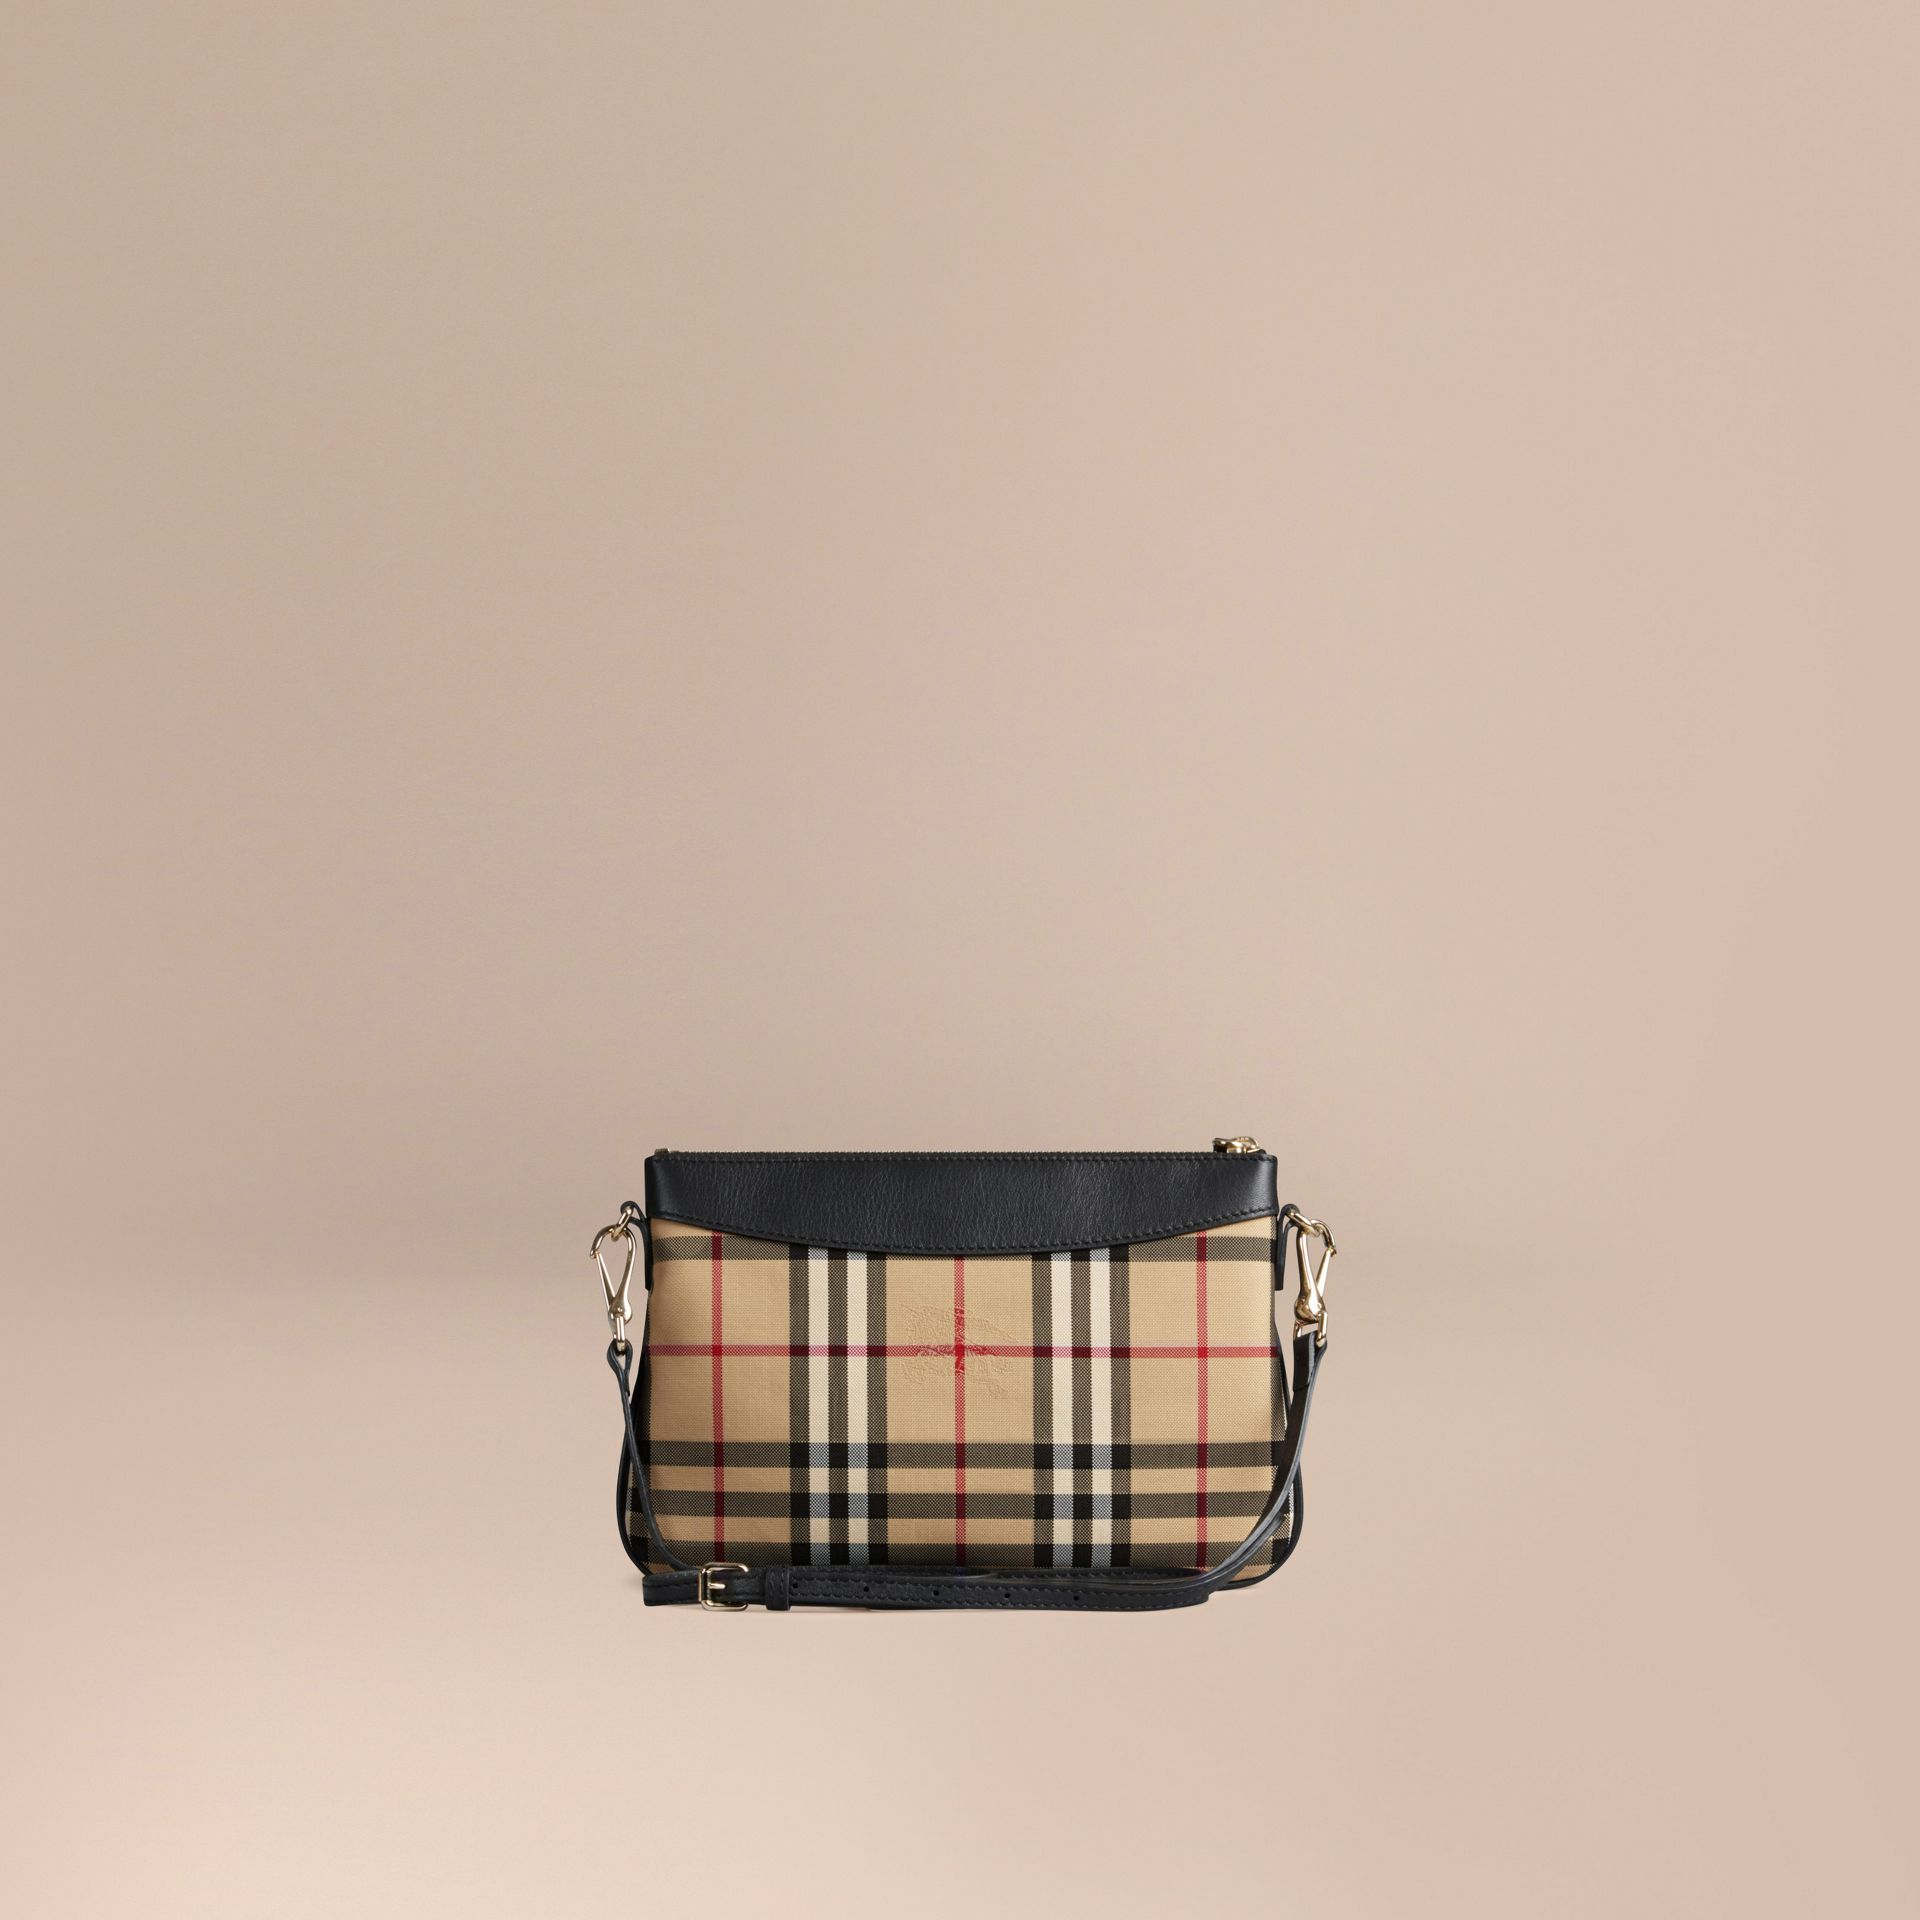 Black Horseferry Check and Leather Clutch Bag Black - gallery image 5